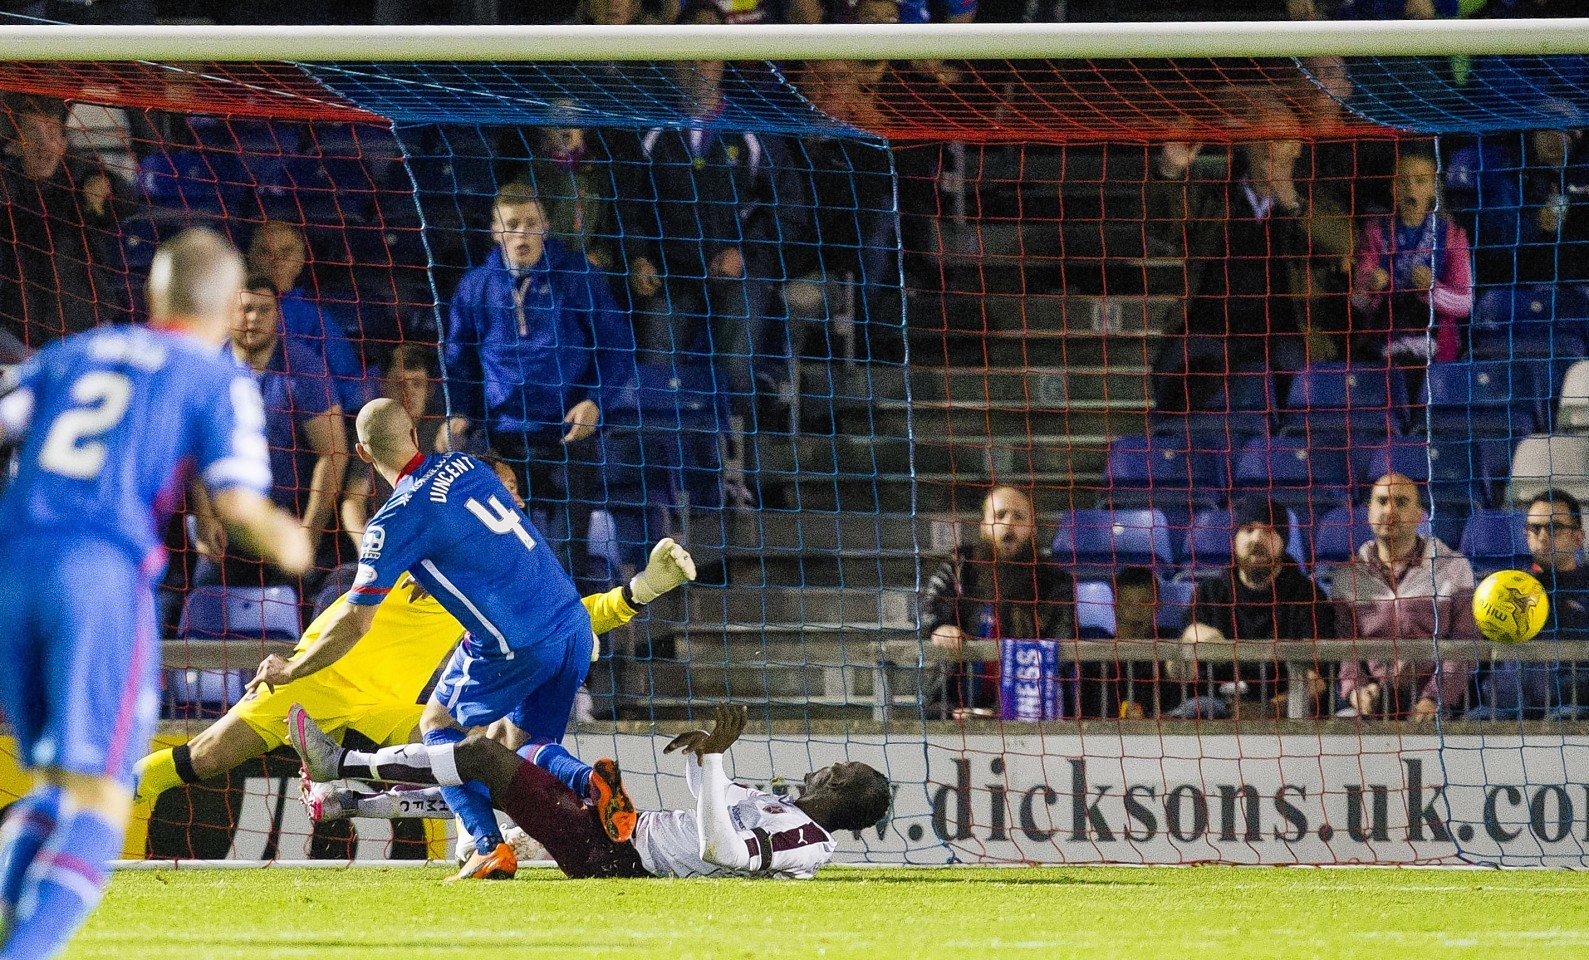 James Vincent breaks the deadlock for Caley Thistle against Hearts.